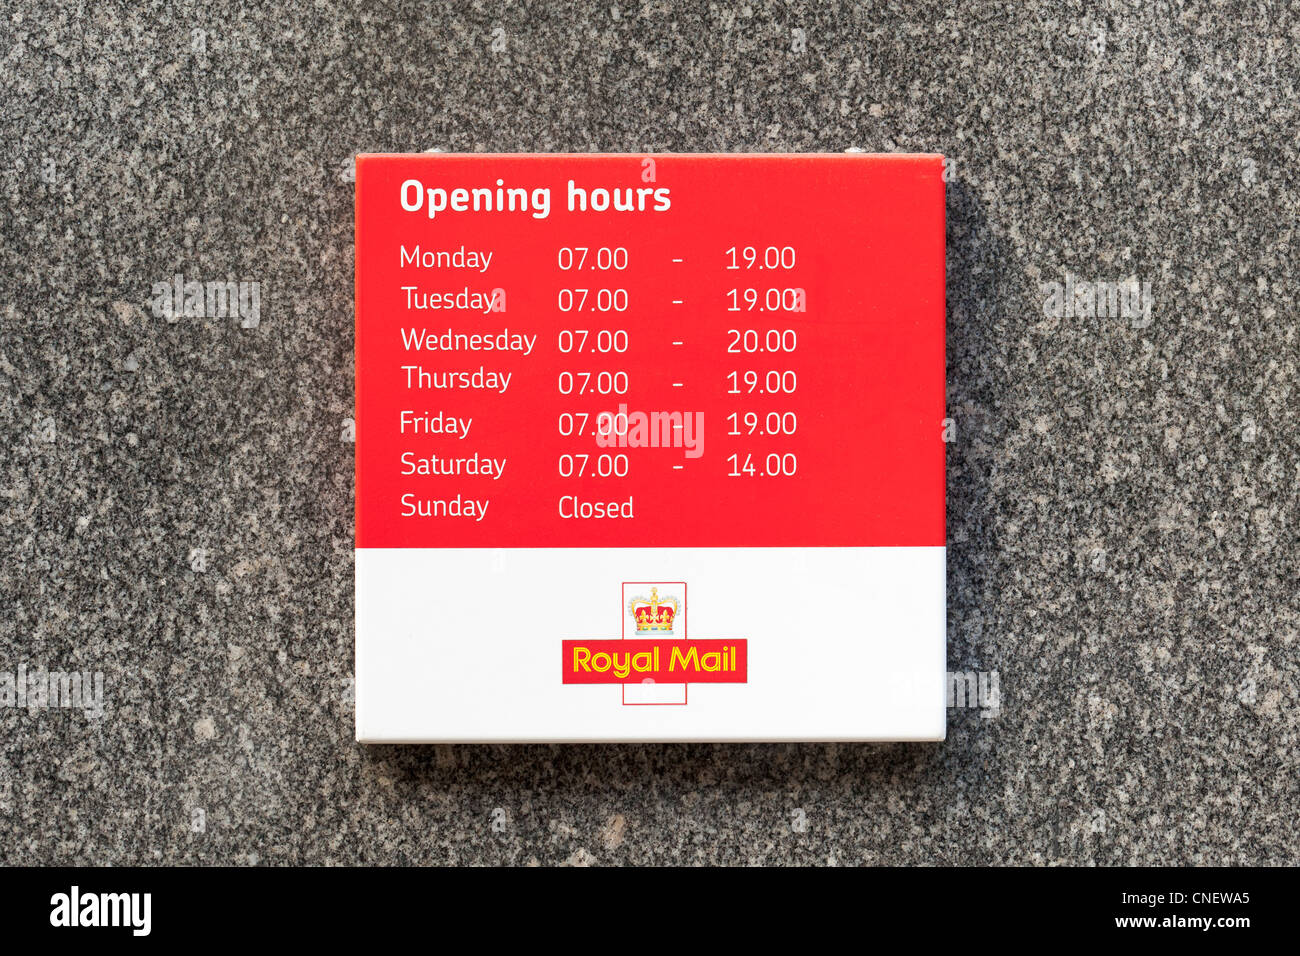 how long is post office open on saturday